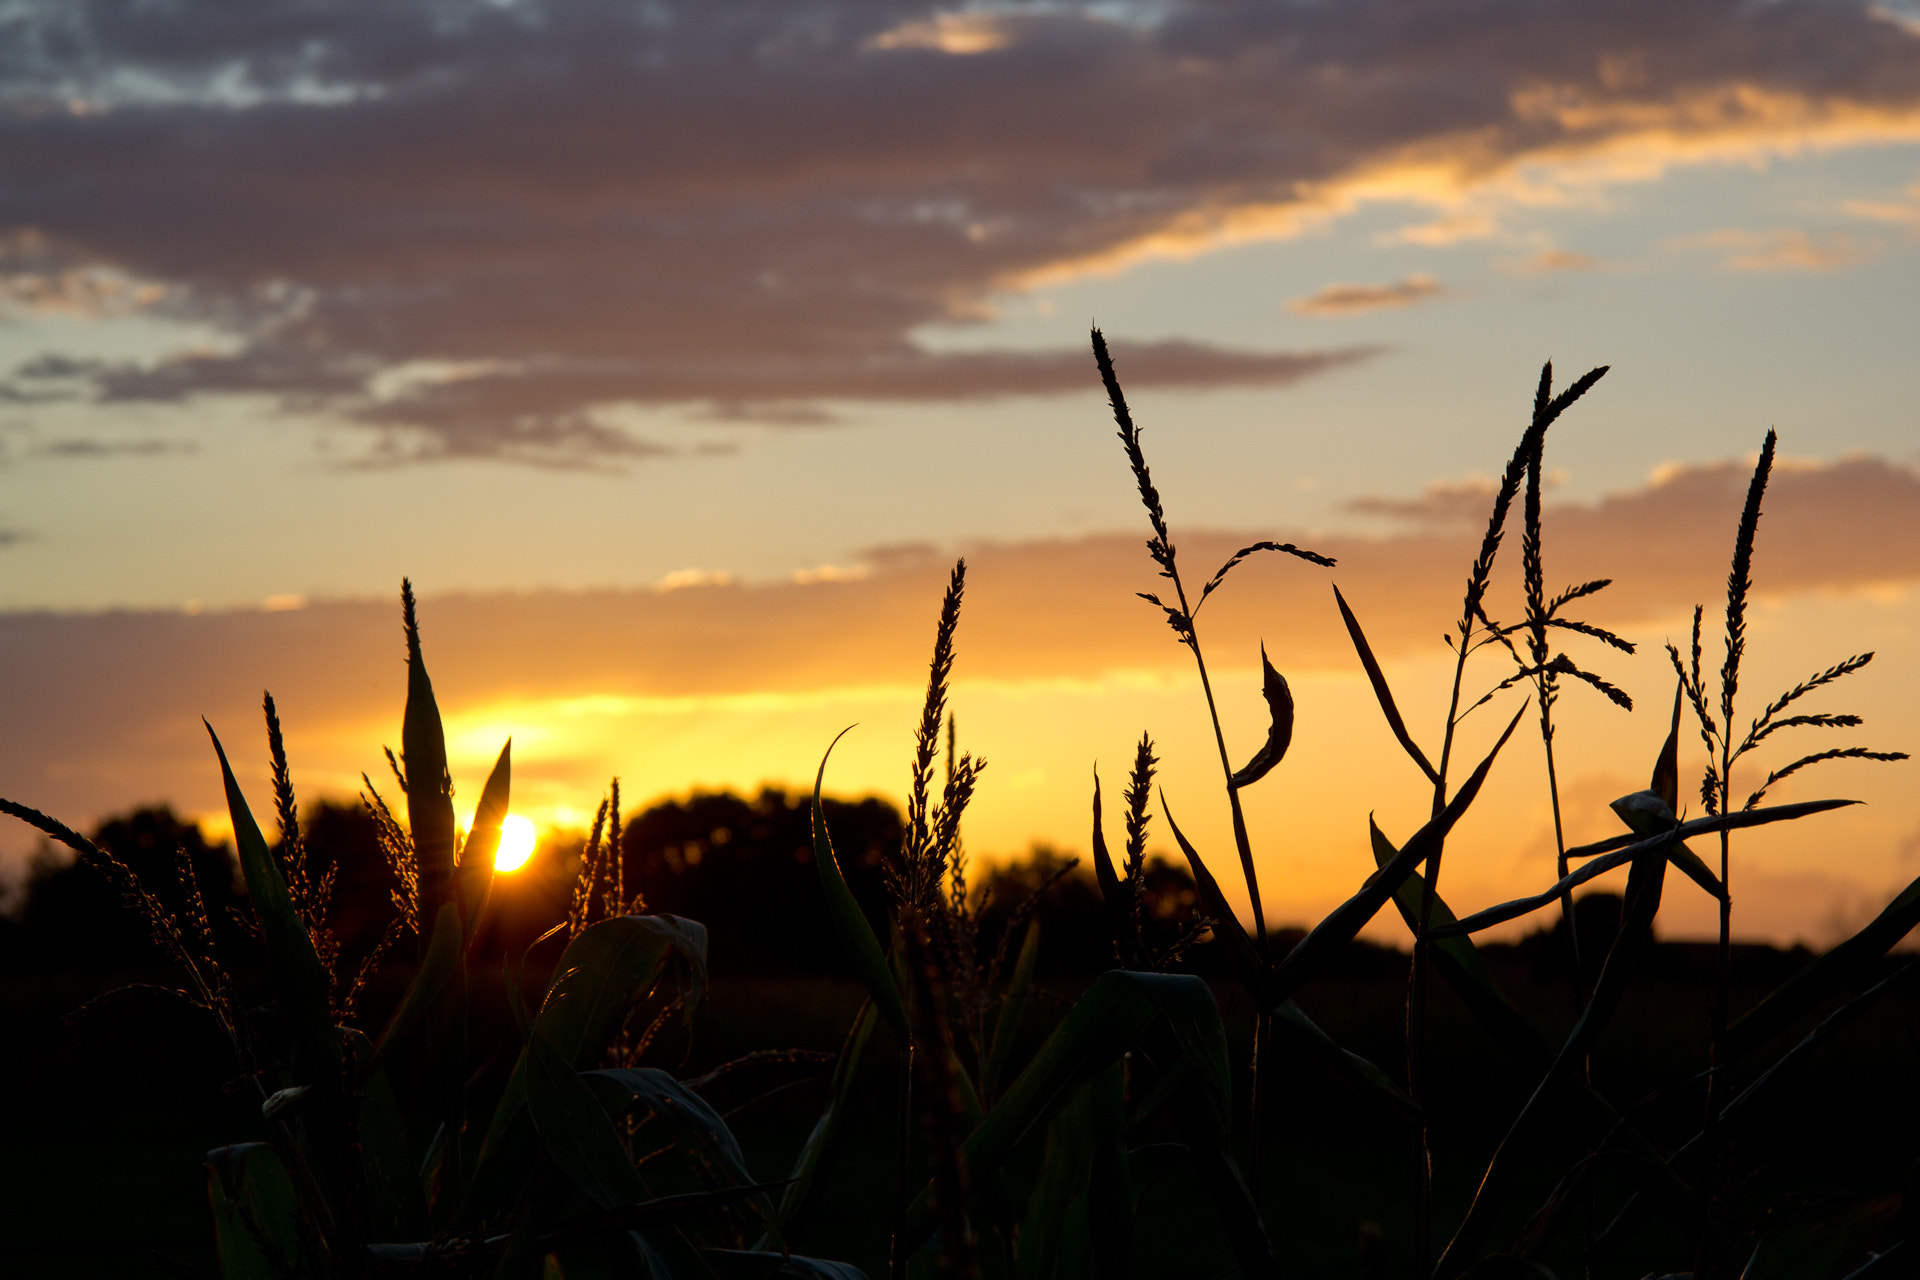 Photograph Sunset Corn by Denis Caeyers on 500px